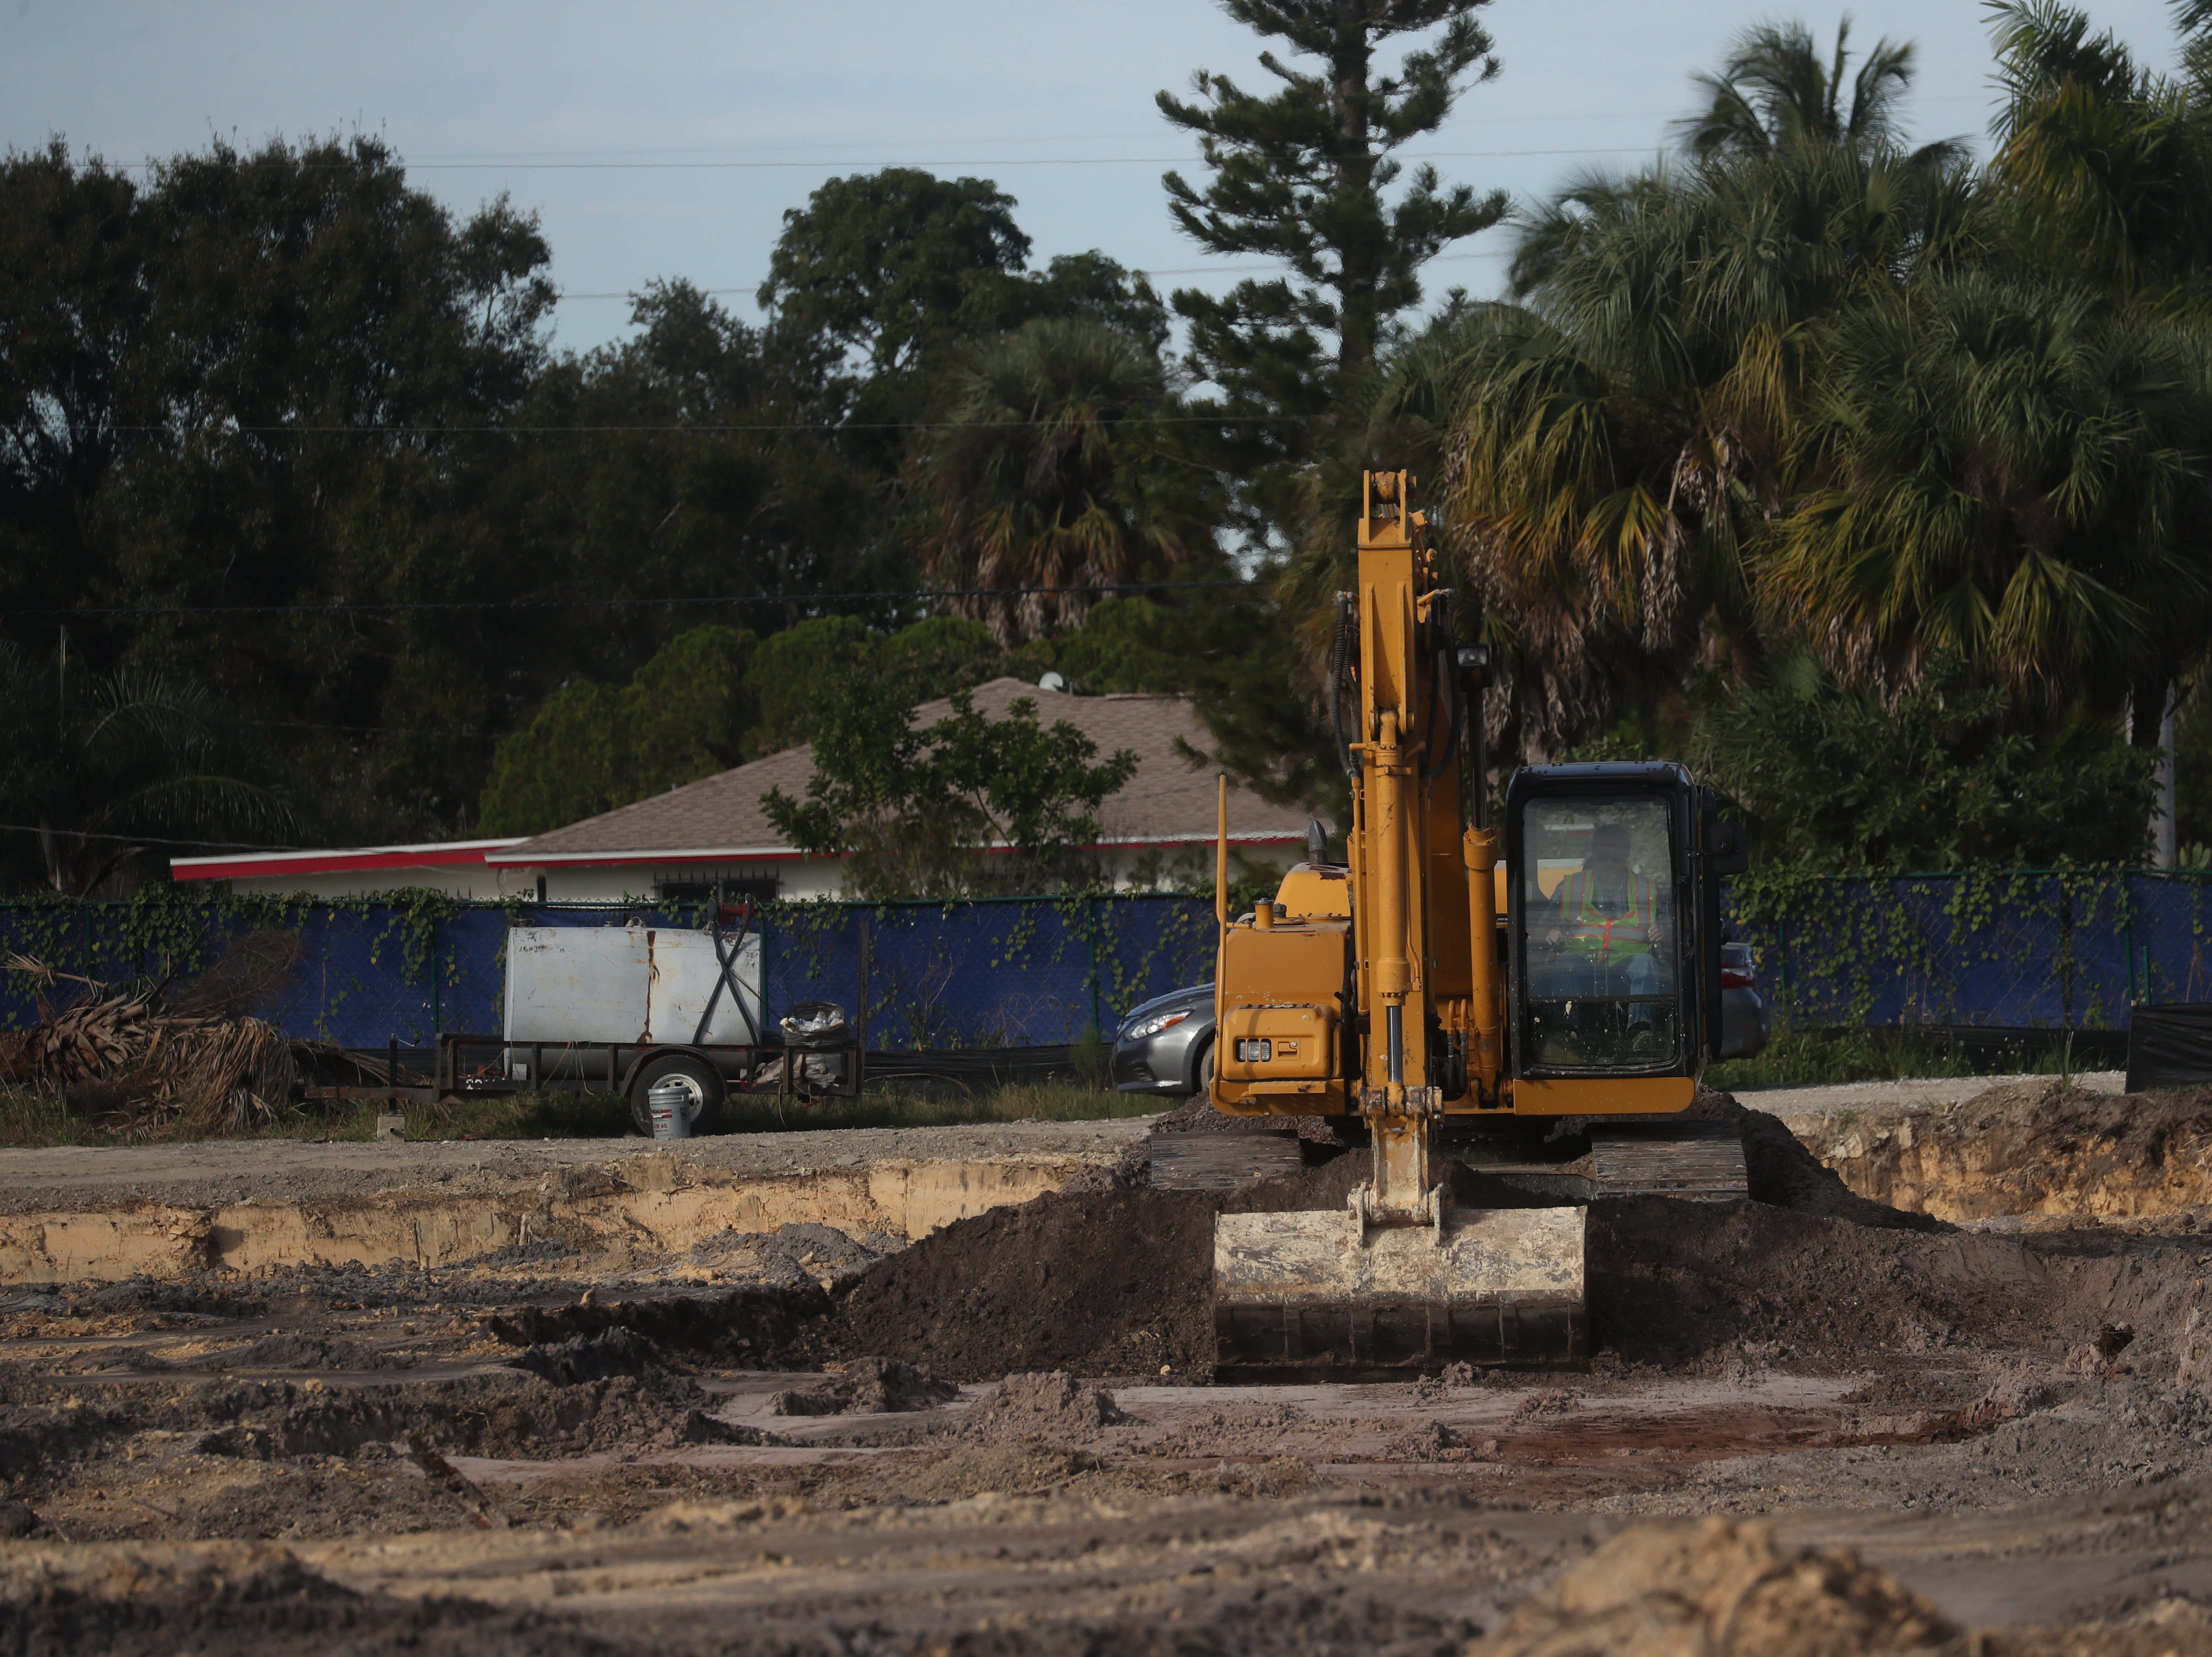 The process to remove toxic sludge from a Fort Myers neighborhood off of South Street has begun. Two trucks containing material from the site left this morning. The sludge will be driven to the  LaFargeHolcim cement plant in Theodore, Alabama,